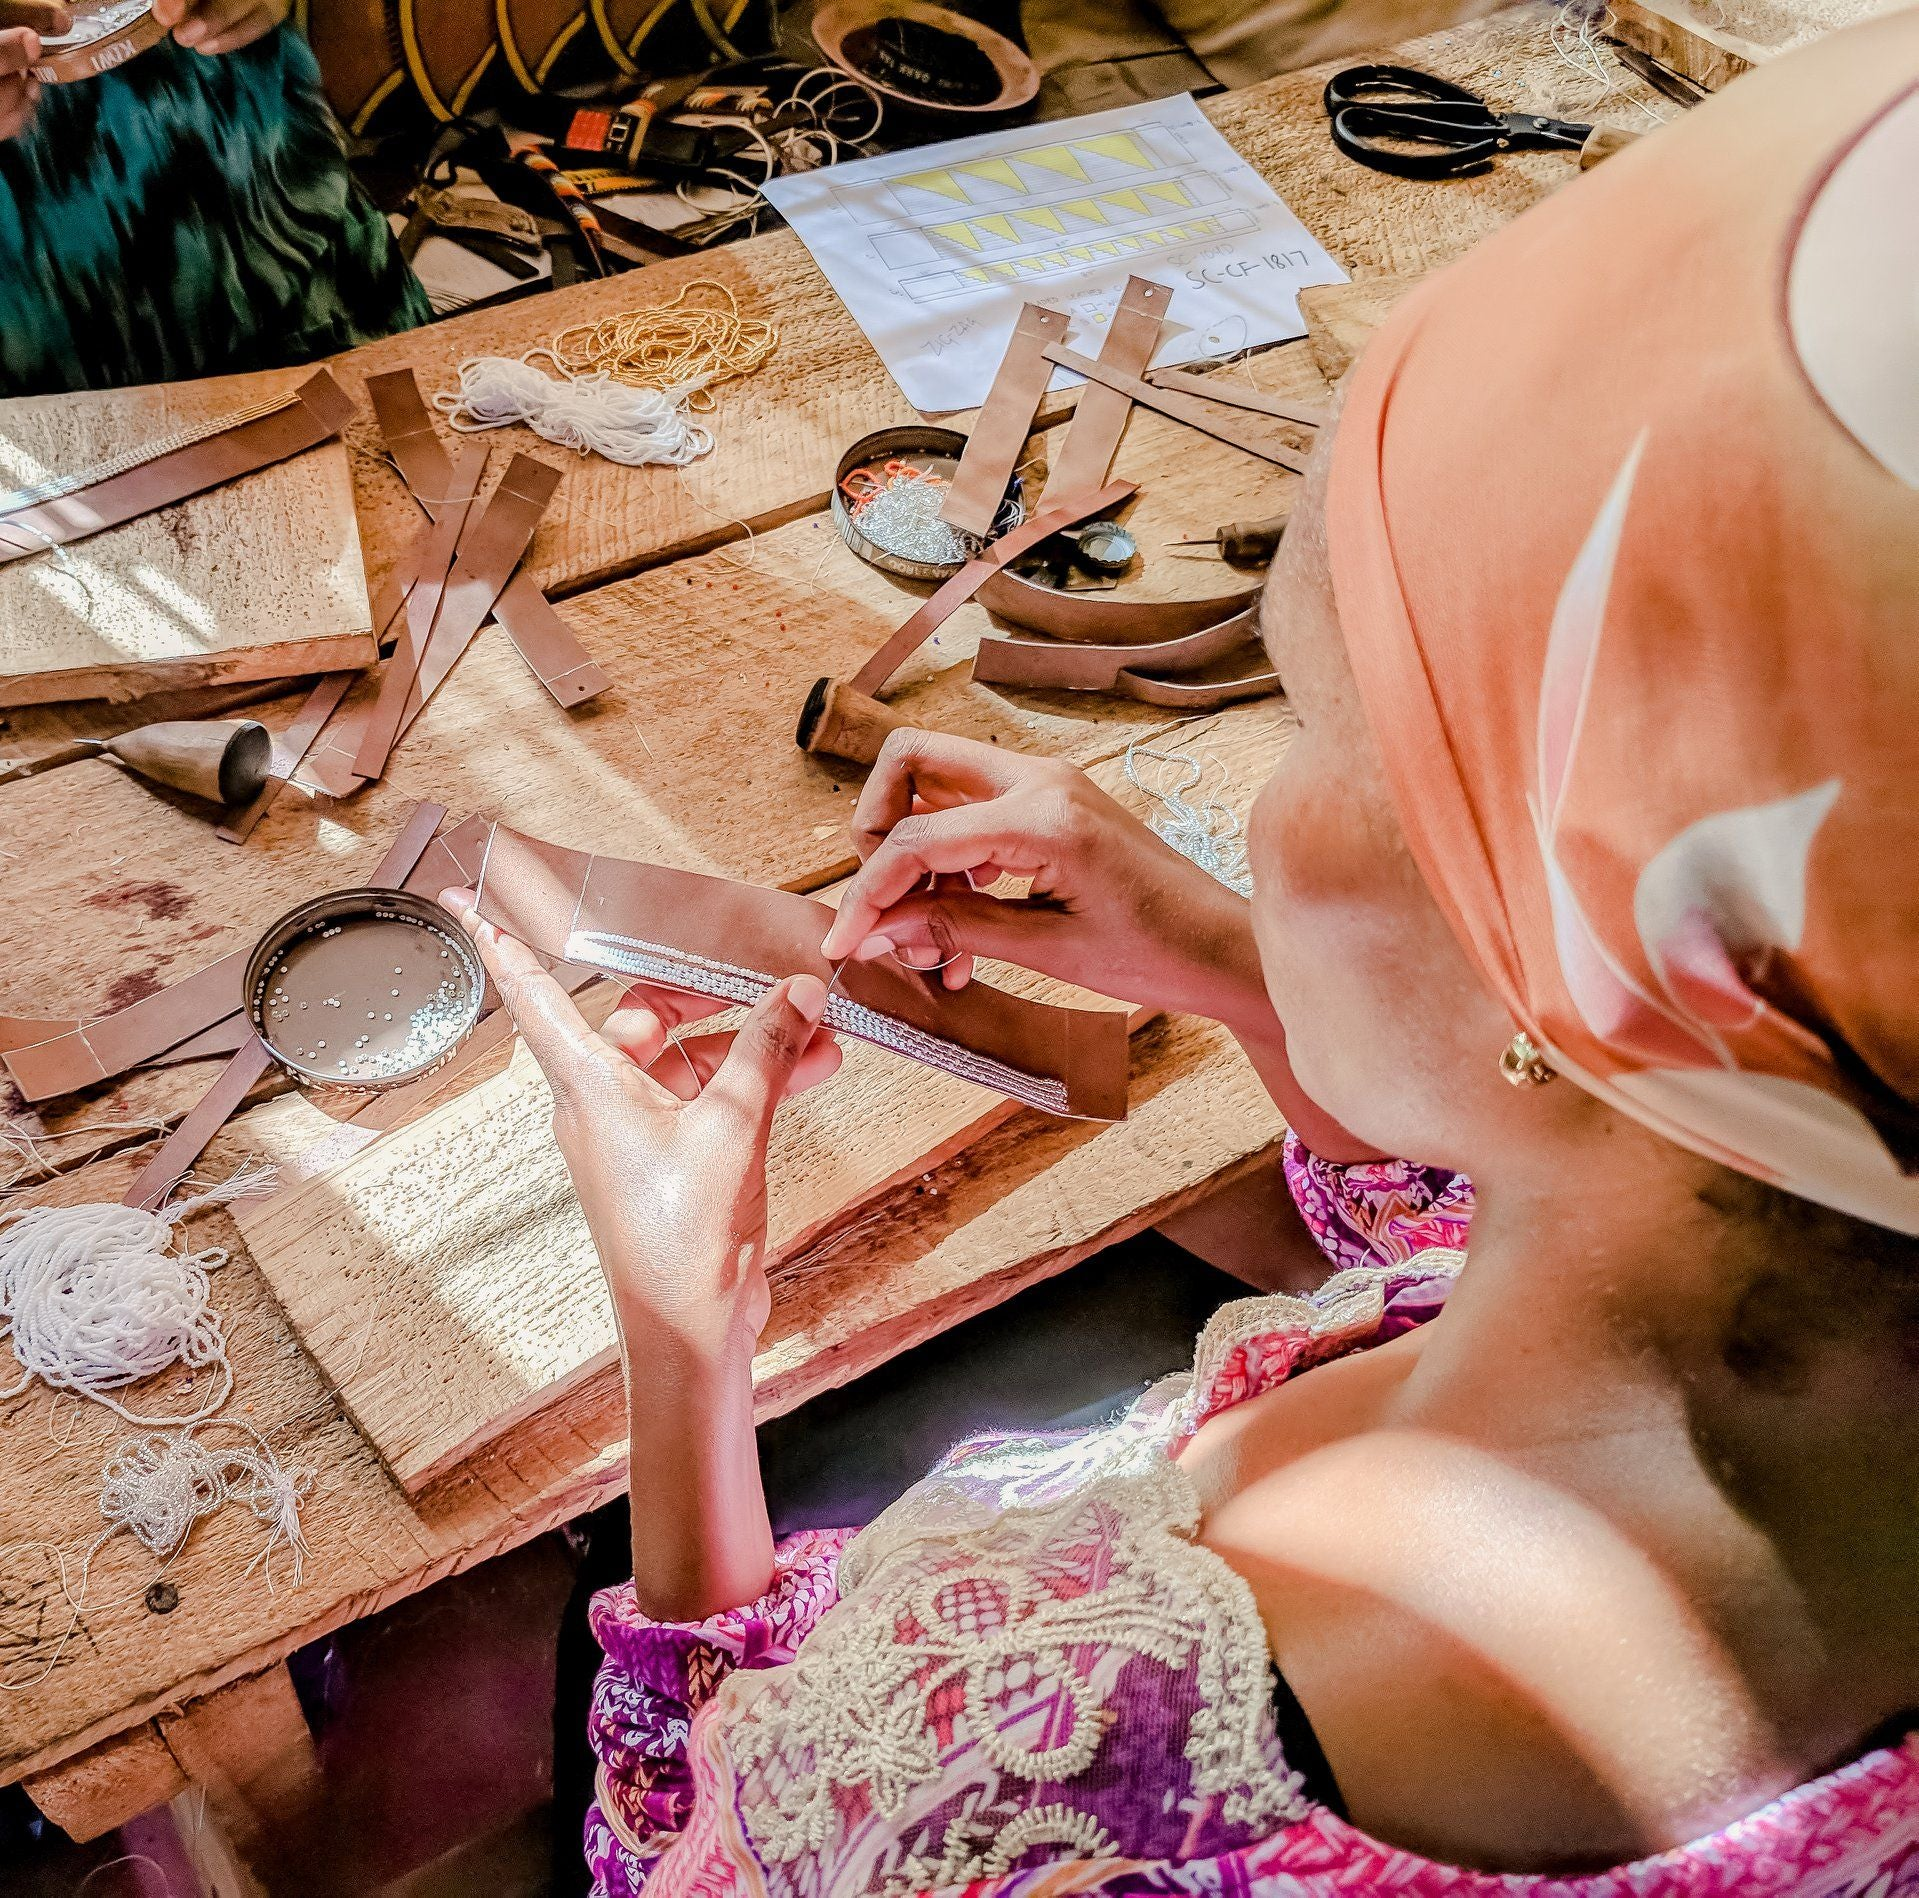 artisans making fair trade jewelry